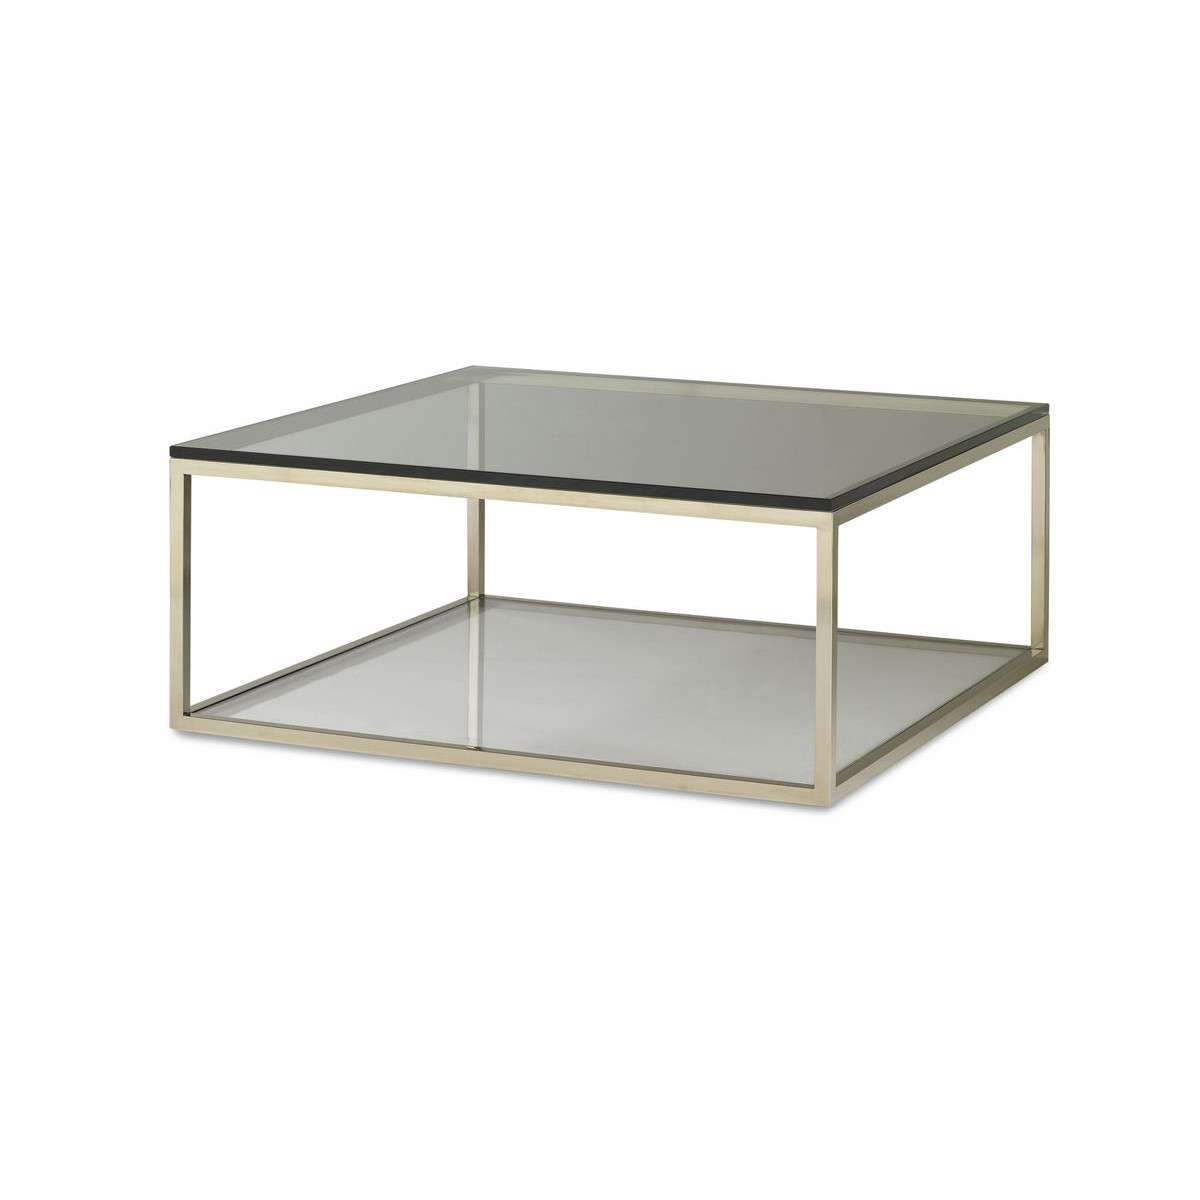 Aleksil With Latest Glass Square Coffee Tables (Gallery 12 of 20)